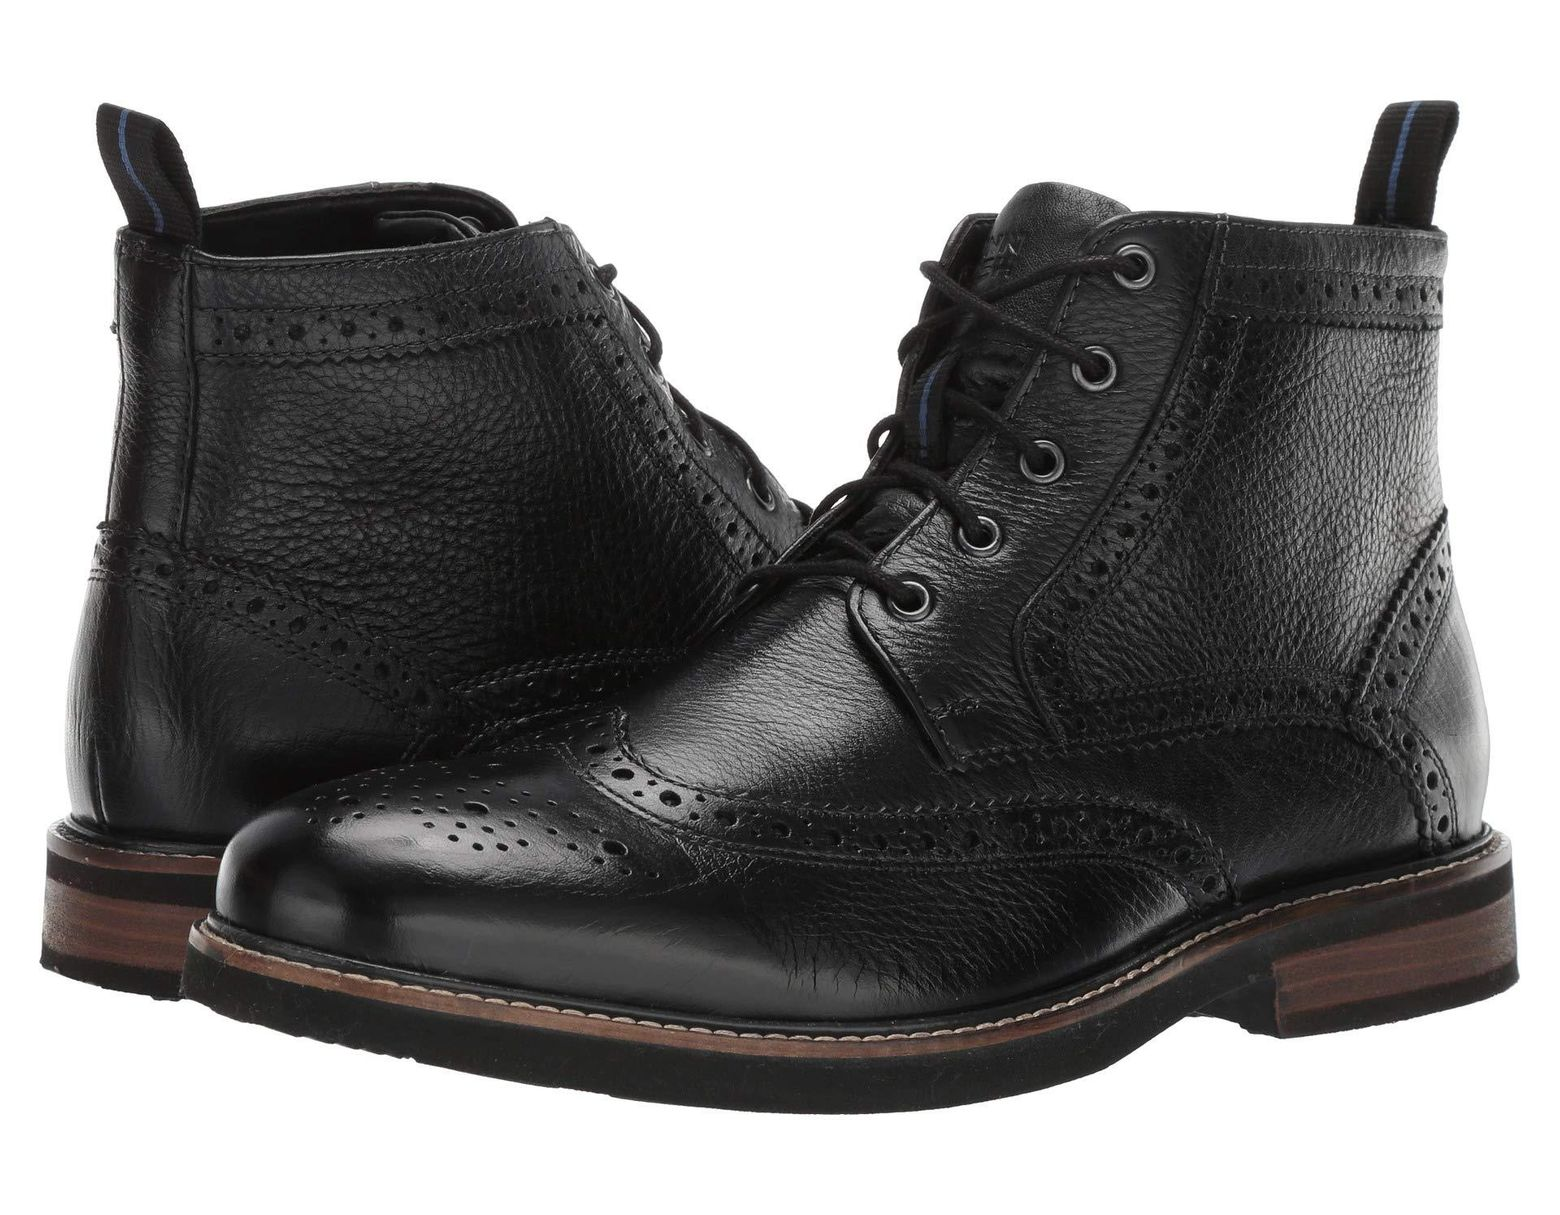 d6f669ca1ae Men's Black Odell Wingtip Boot With Kore Walking Comfort Technology